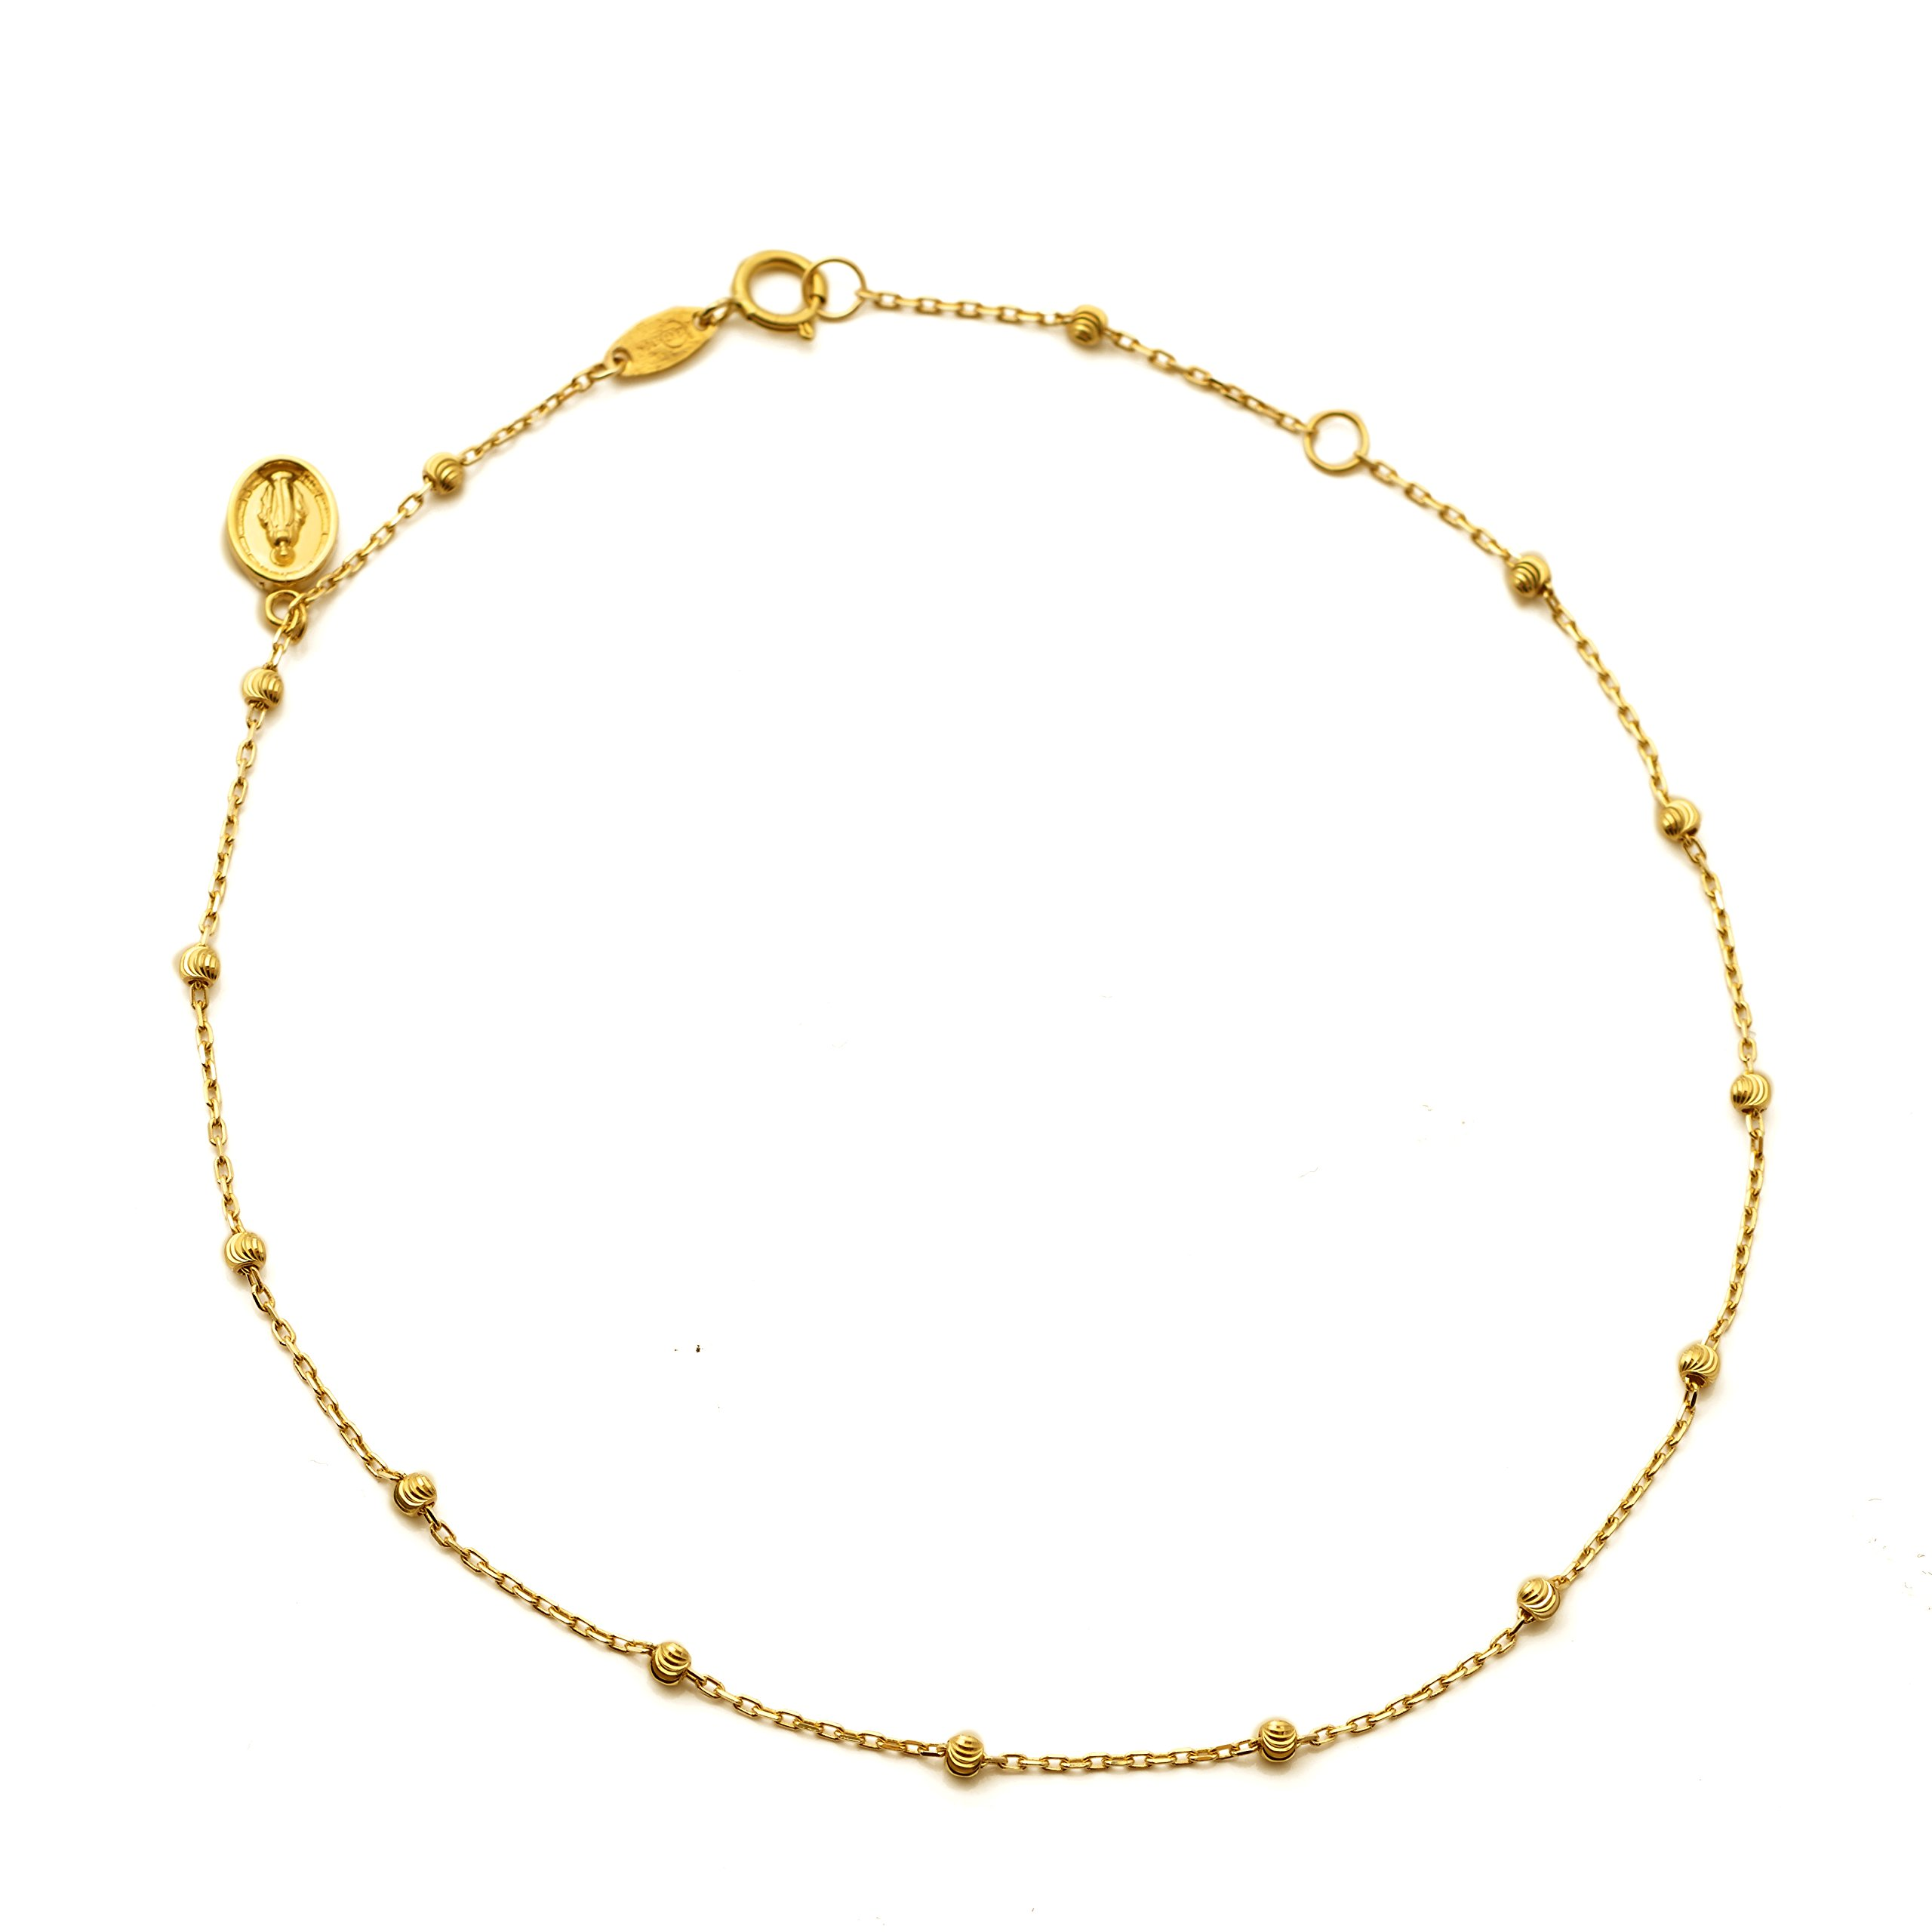 LoveBling 10K Yellow Gold .50mm Diamond Cut Rolo Chain with a Virgin Mary Charm & Beads Anklet Adjustable 9'' to 10'' (#51)